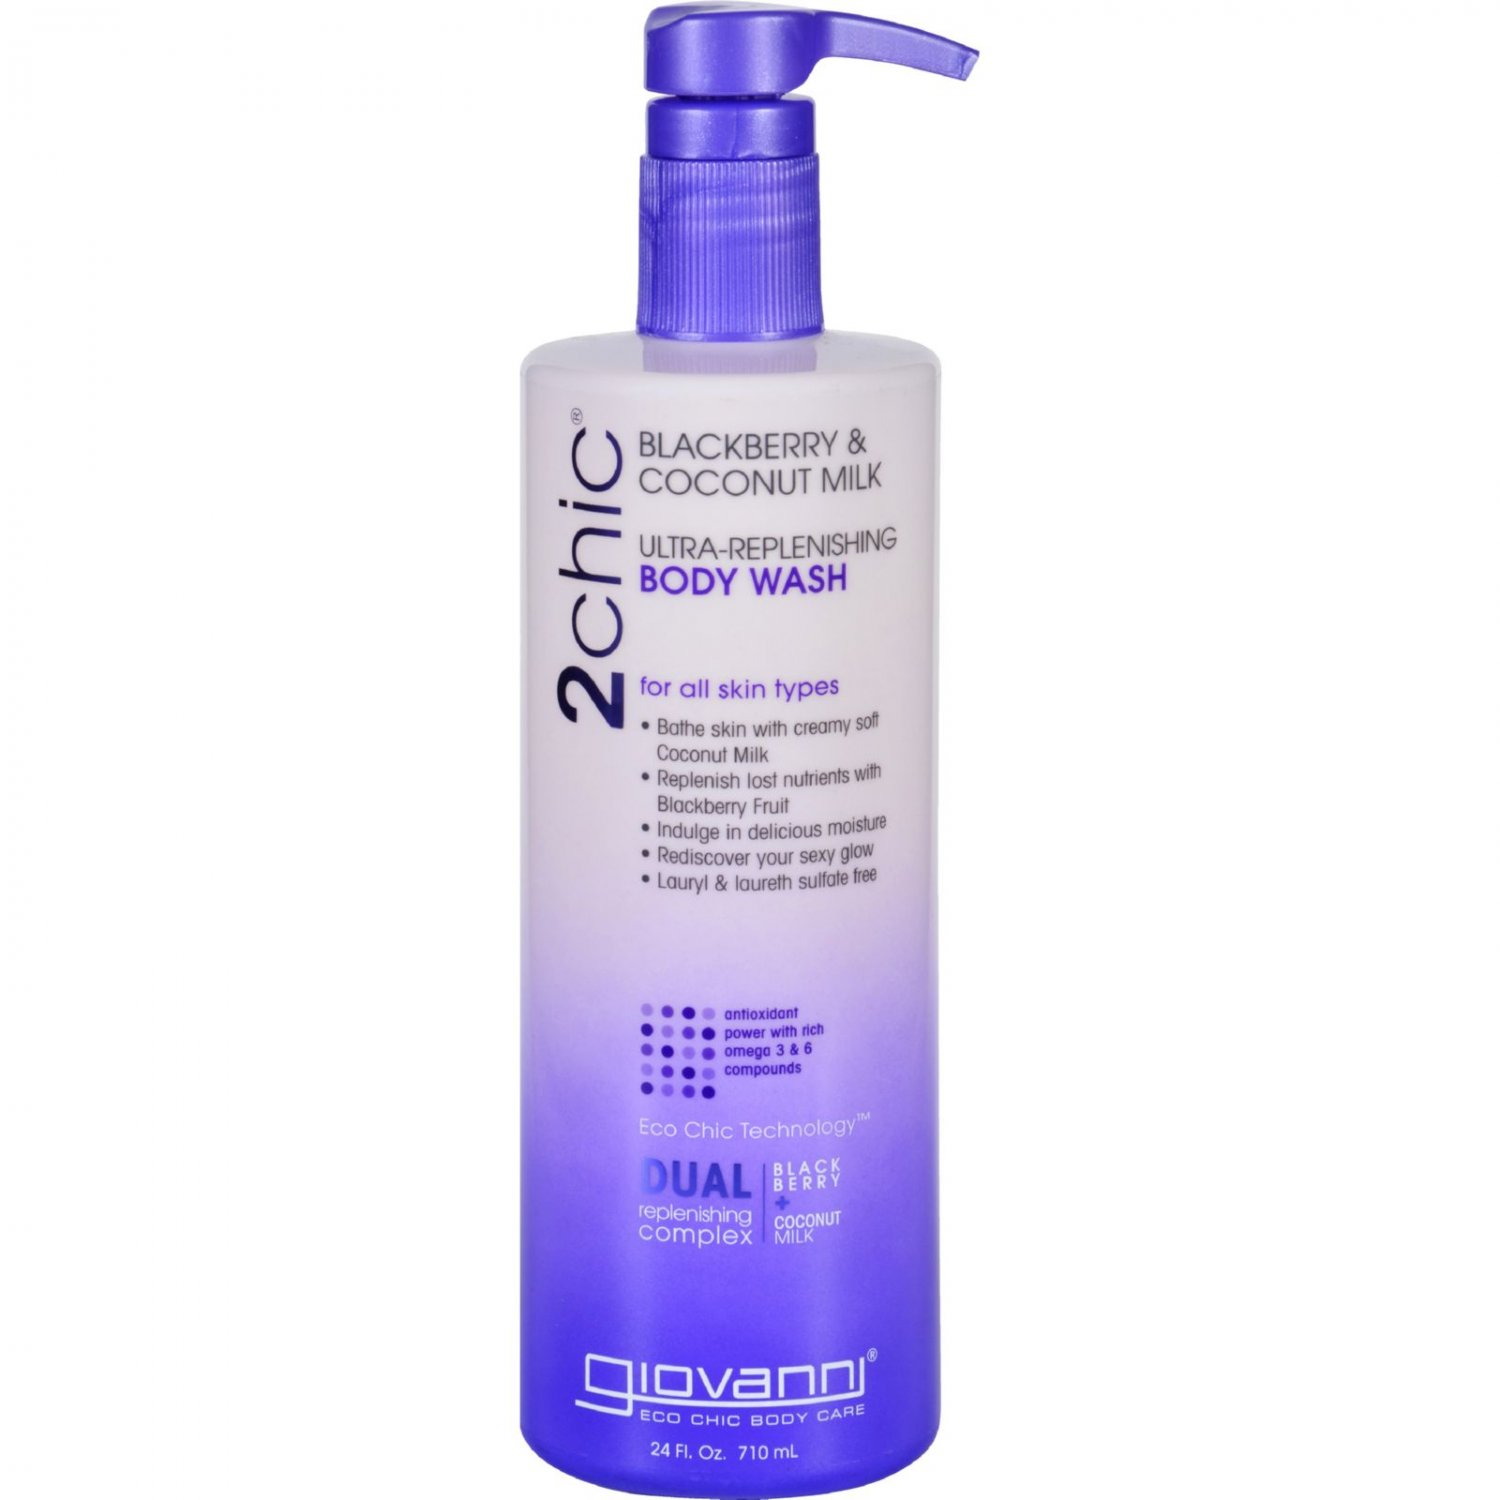 Giovanni Hair Care Products Body Wash - 2chic - Repairing - Ultra-Replenishing - Blackberry and Coco